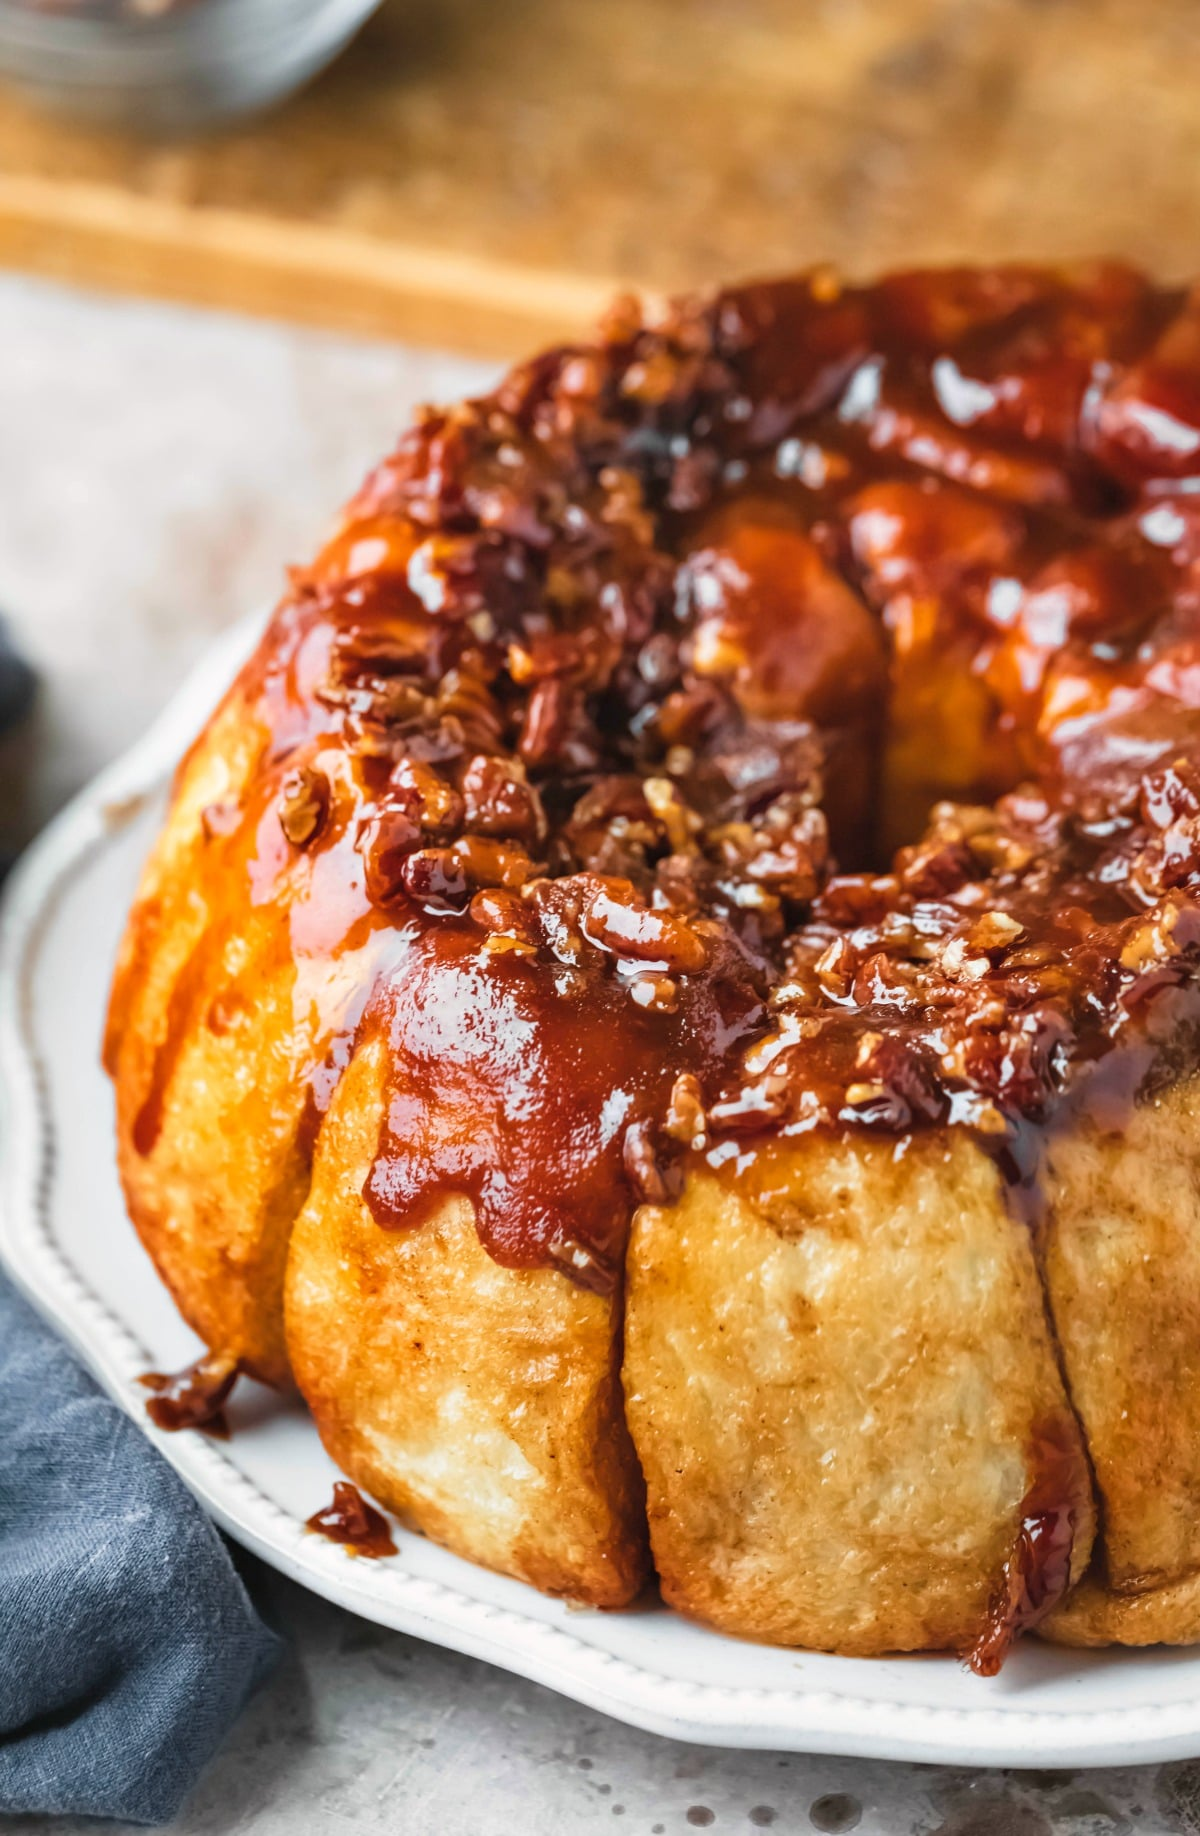 Overnight sticky buns next to a wooden cutting board and a bowl of pecans